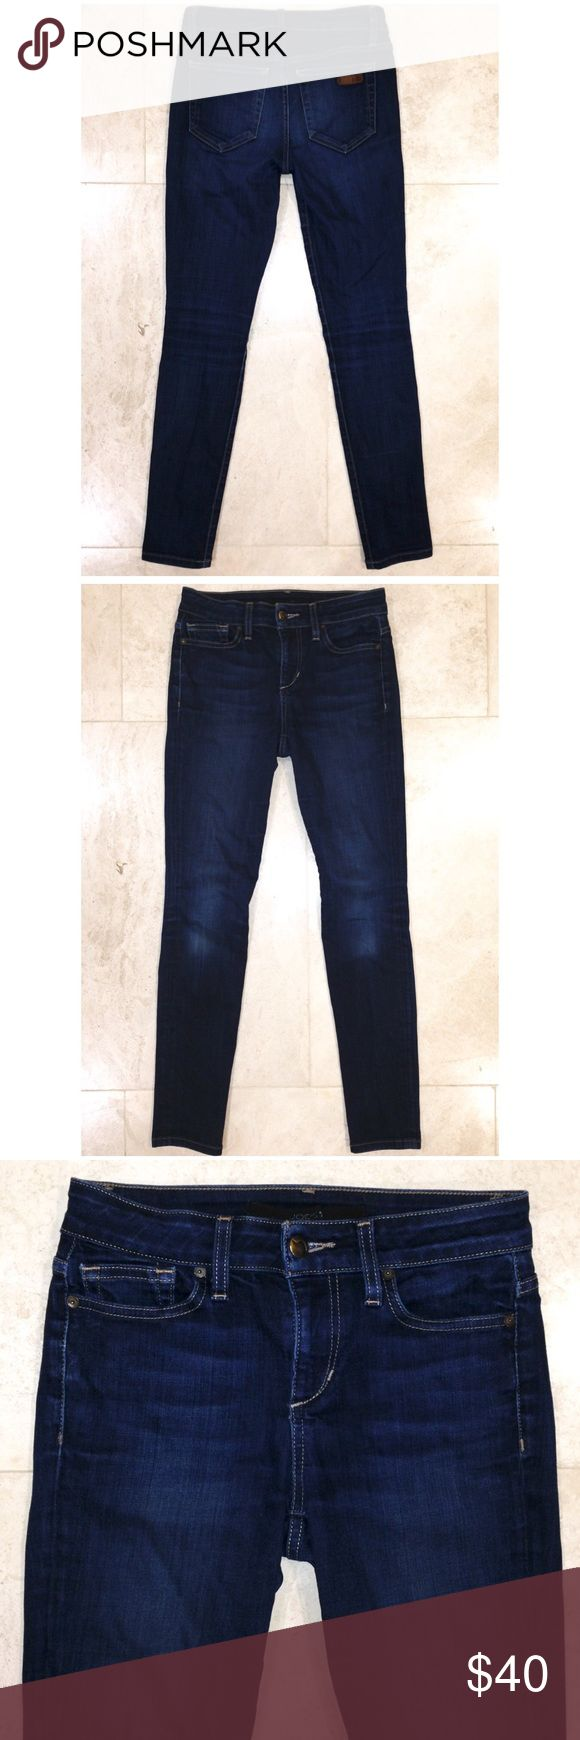 """▪️Joe's Jeans▪️ Joe's """"Skinny Ankle"""" Jeans in size 25 with a 28"""" inseam come in LIKE NEW condition. Dark wash, high rise and a skinny ankle fit. Bought these not realizing they are an 8"""" high rise. Perfect condition and waiting for YOU!!! My prices fluctuate often for sales and specials, so catch your favorite items when prices are low. Thank you in advance for shopping my closet!❤️ Joe's Jeans Jeans Skinny"""